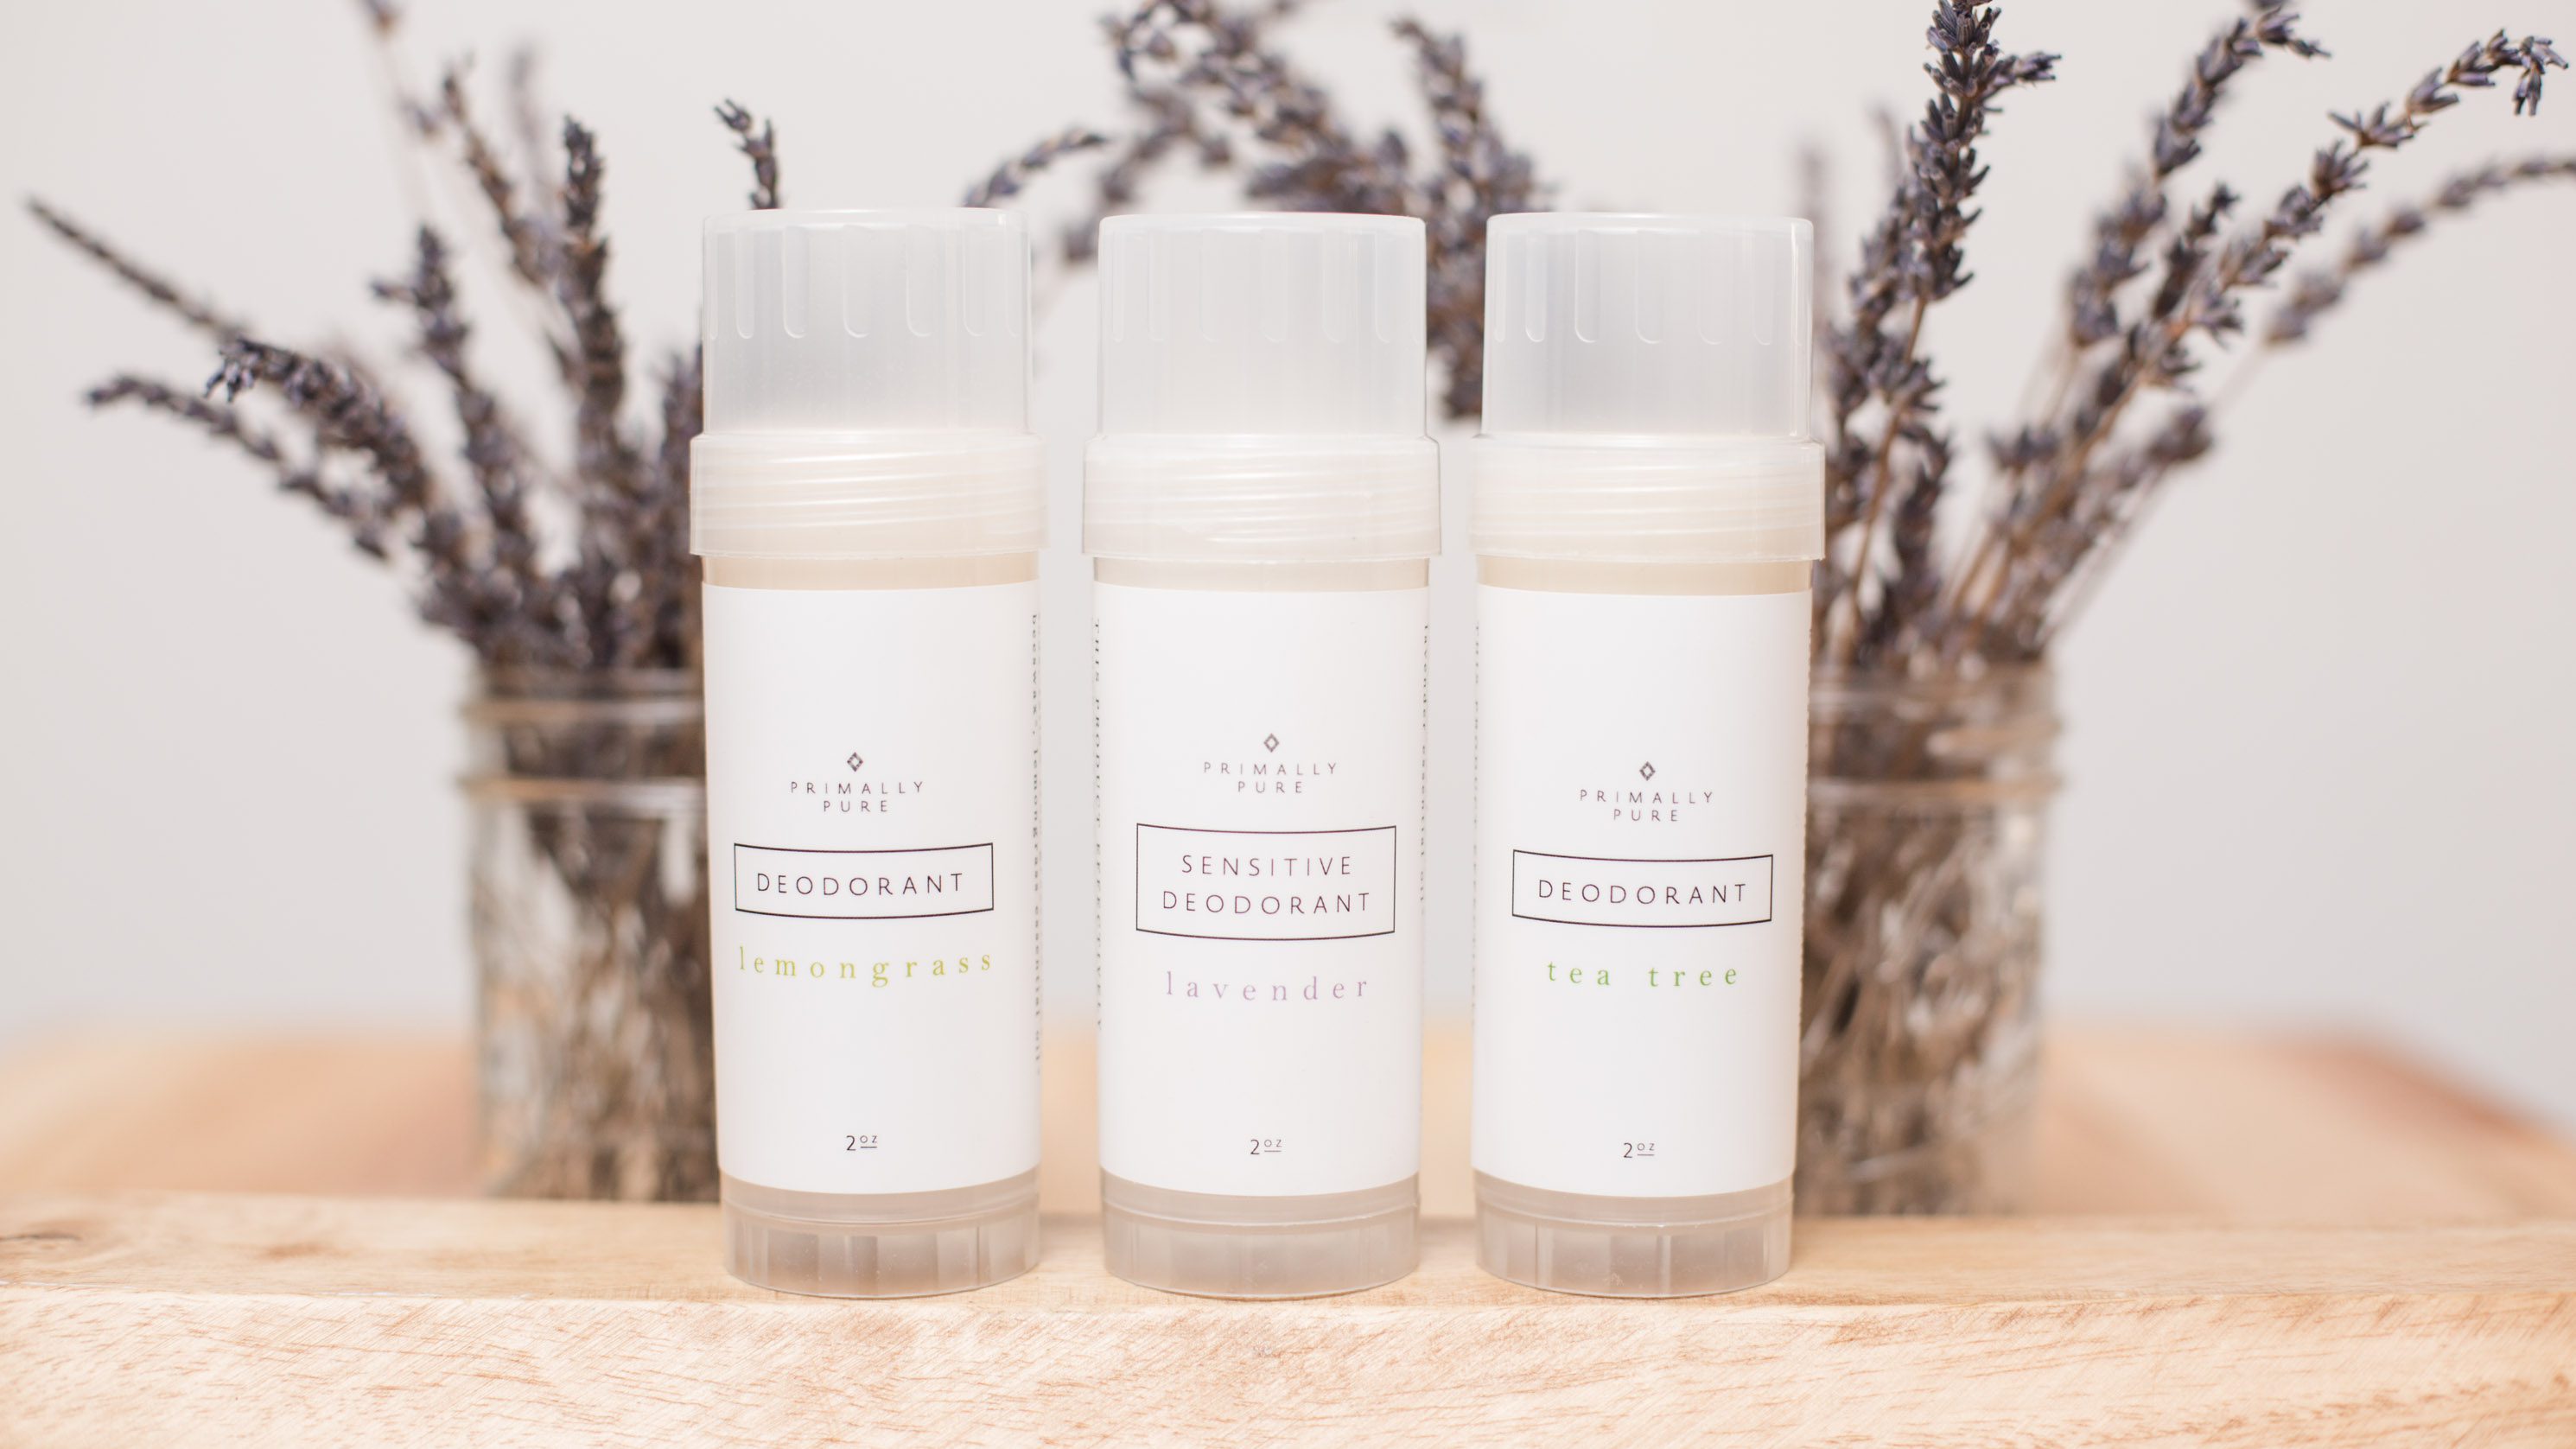 Primally Pure Natural Deodorant